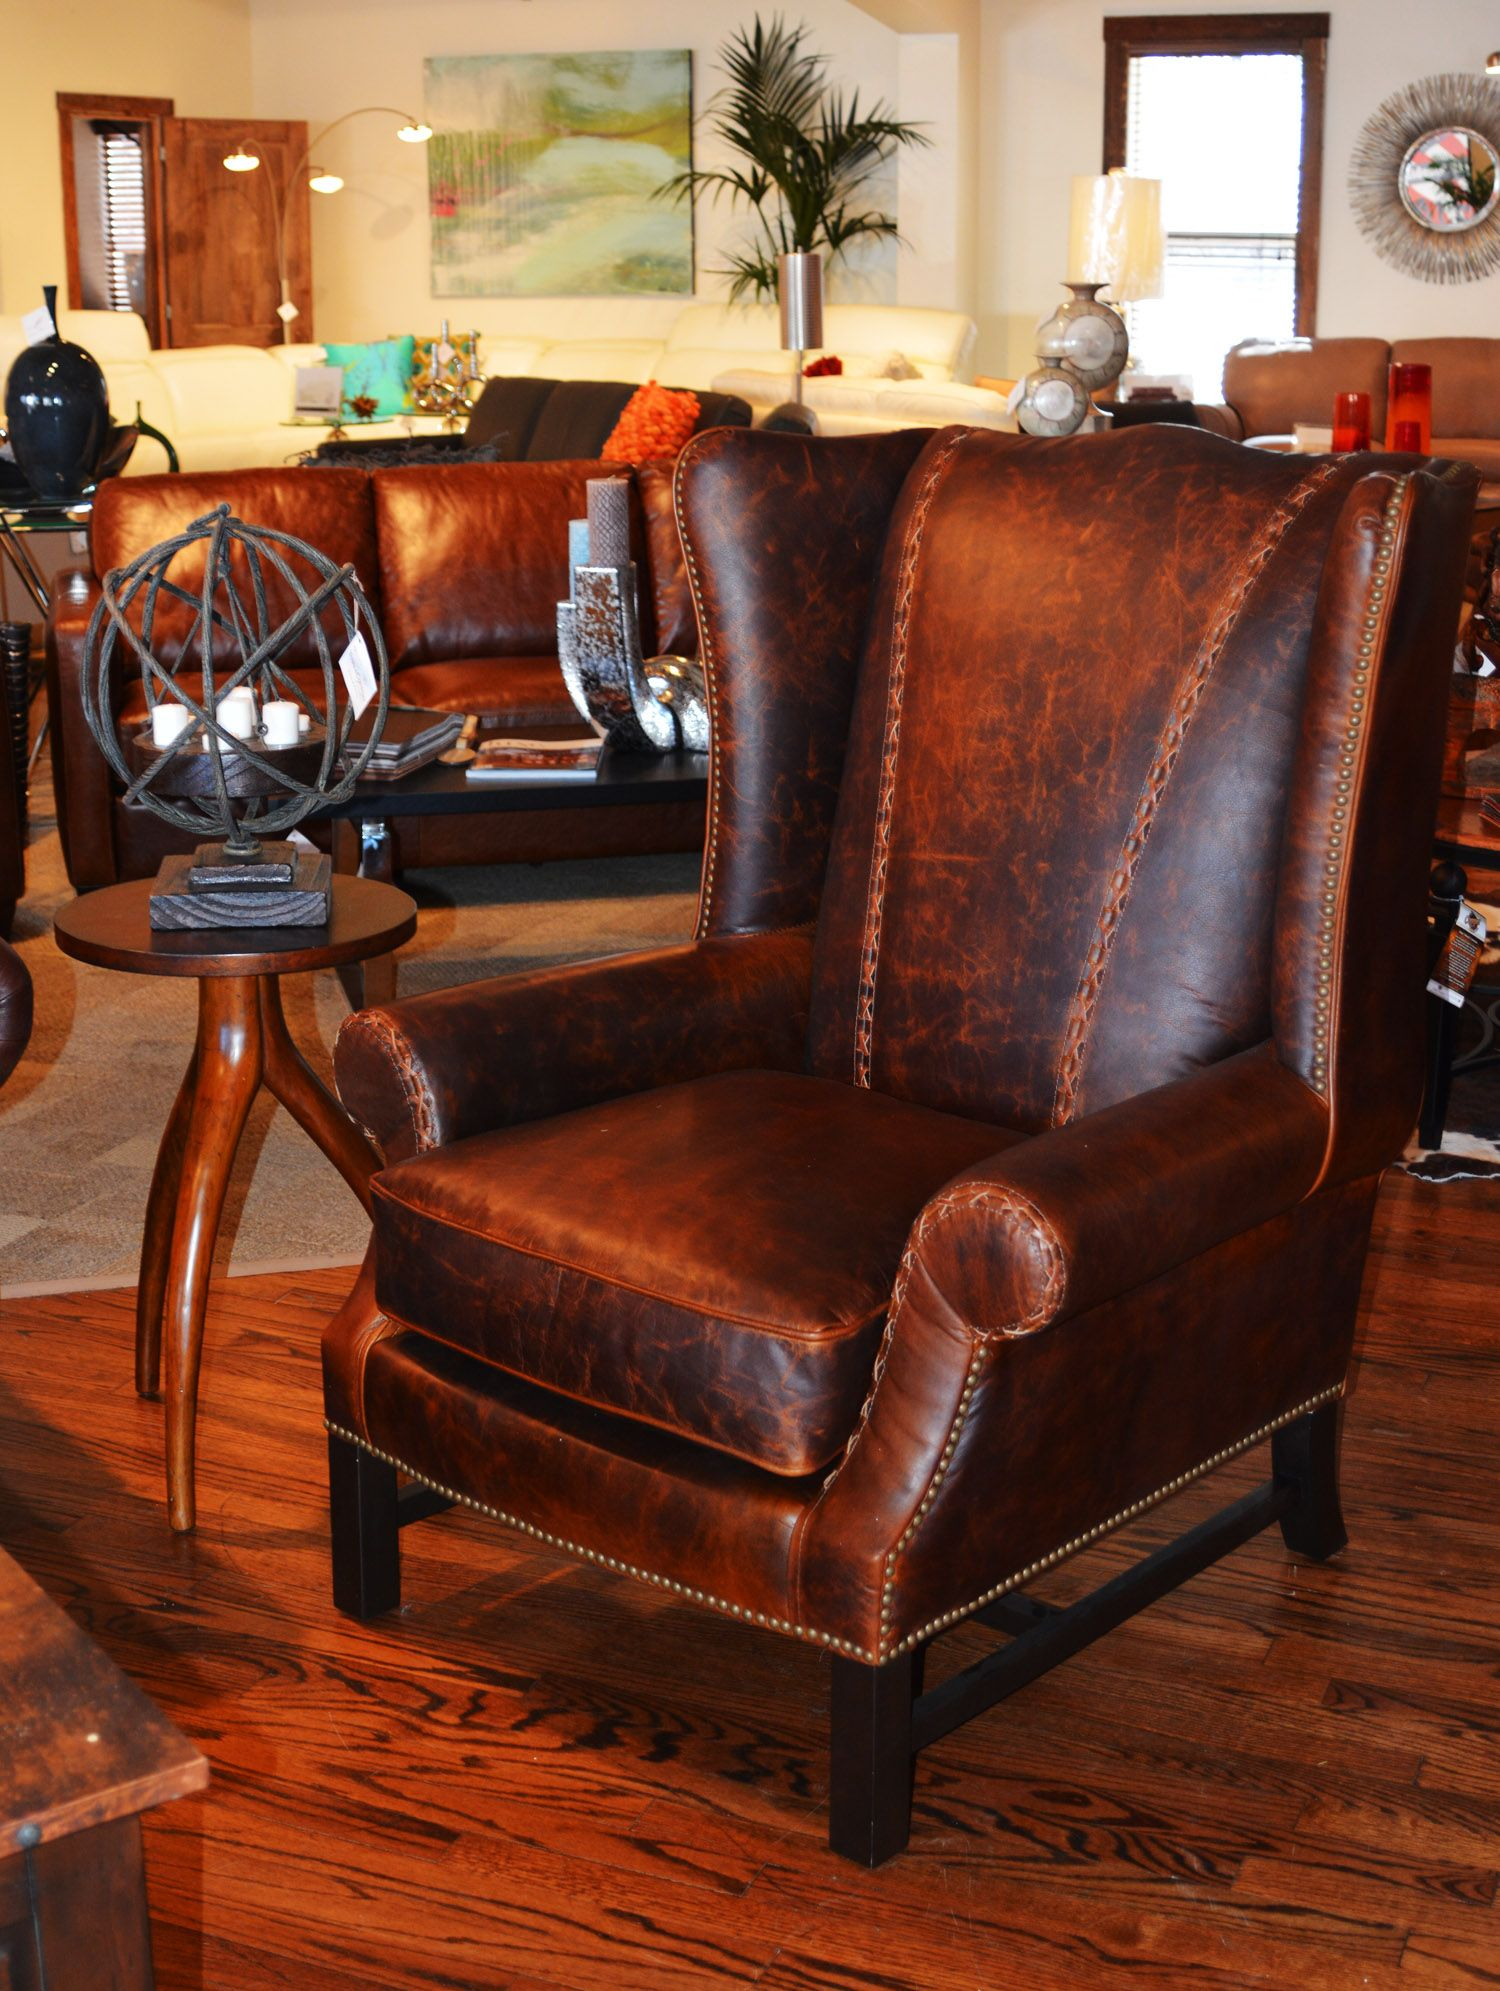 Superieur Stunning Stitching On This Great Leather Club Chair!